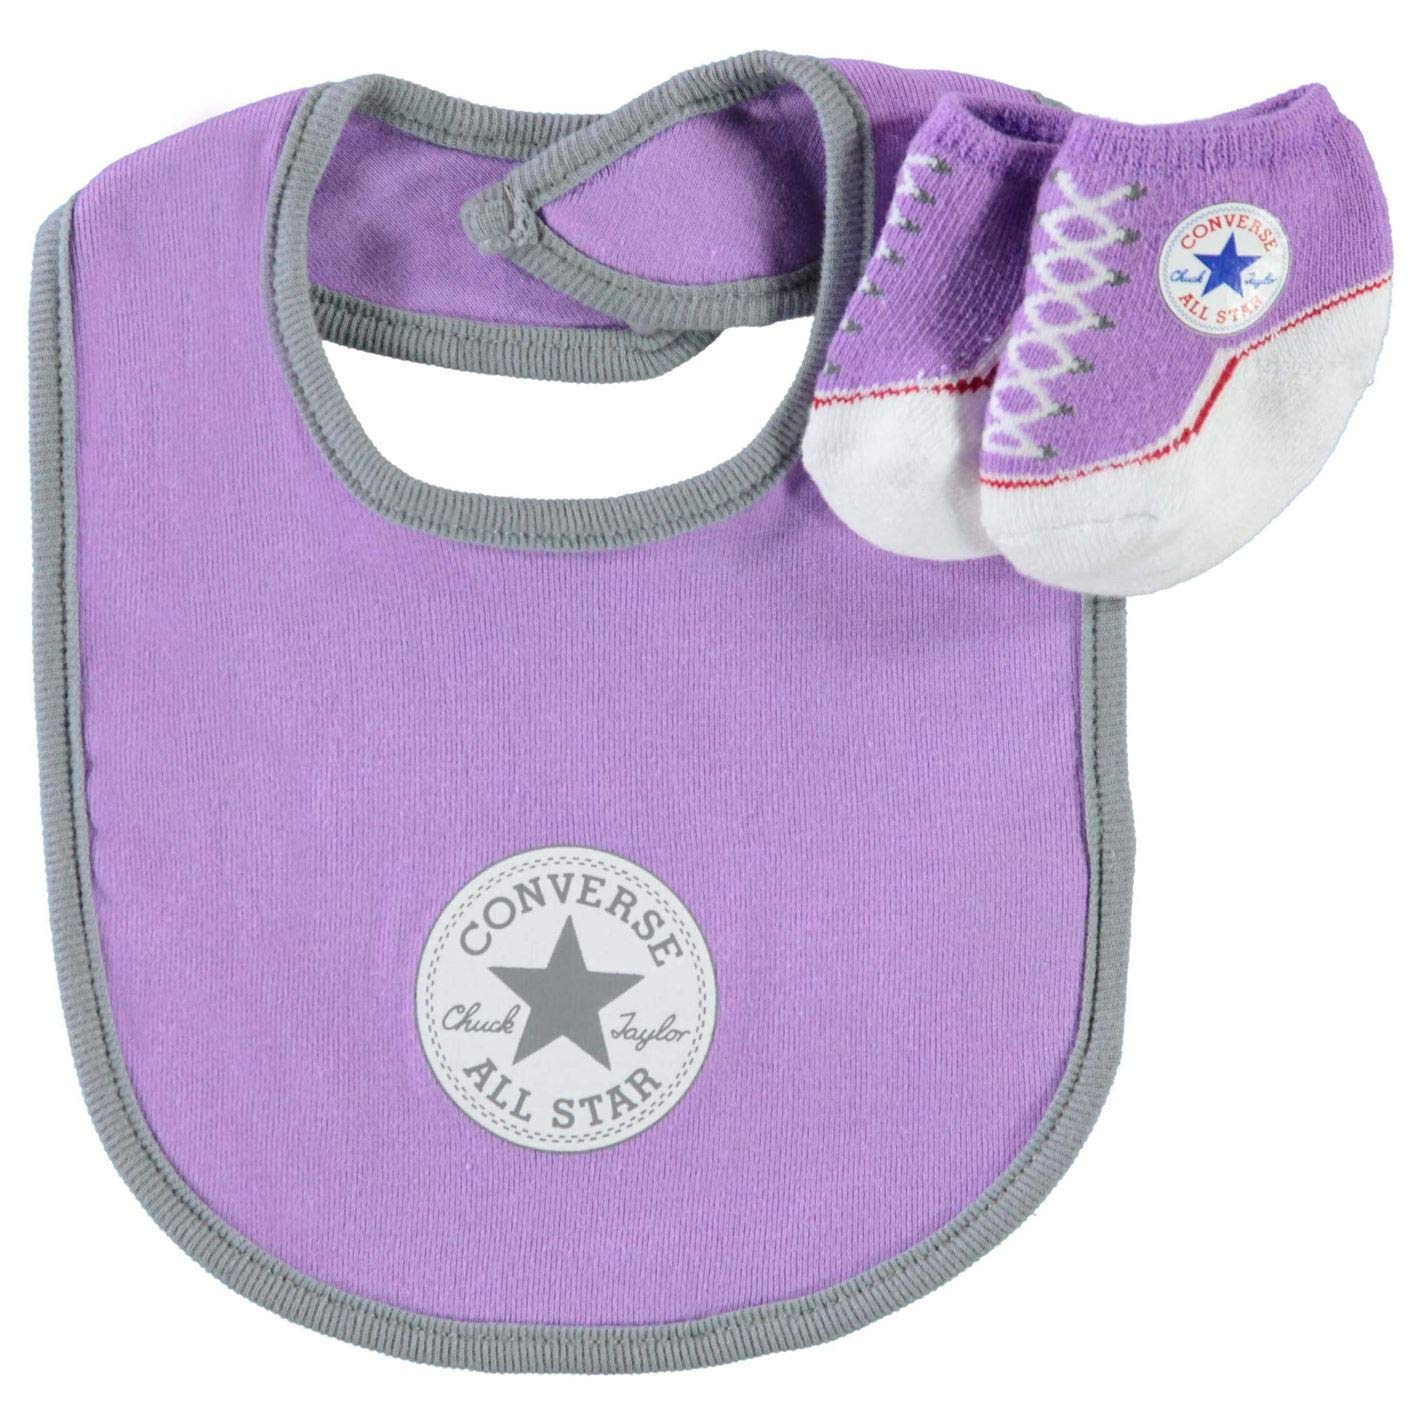 Converse Infant Baby Chuck Taylor Booties & Bib Set (0-6 Months, Lilac(IC0052)/Grey) by Converse